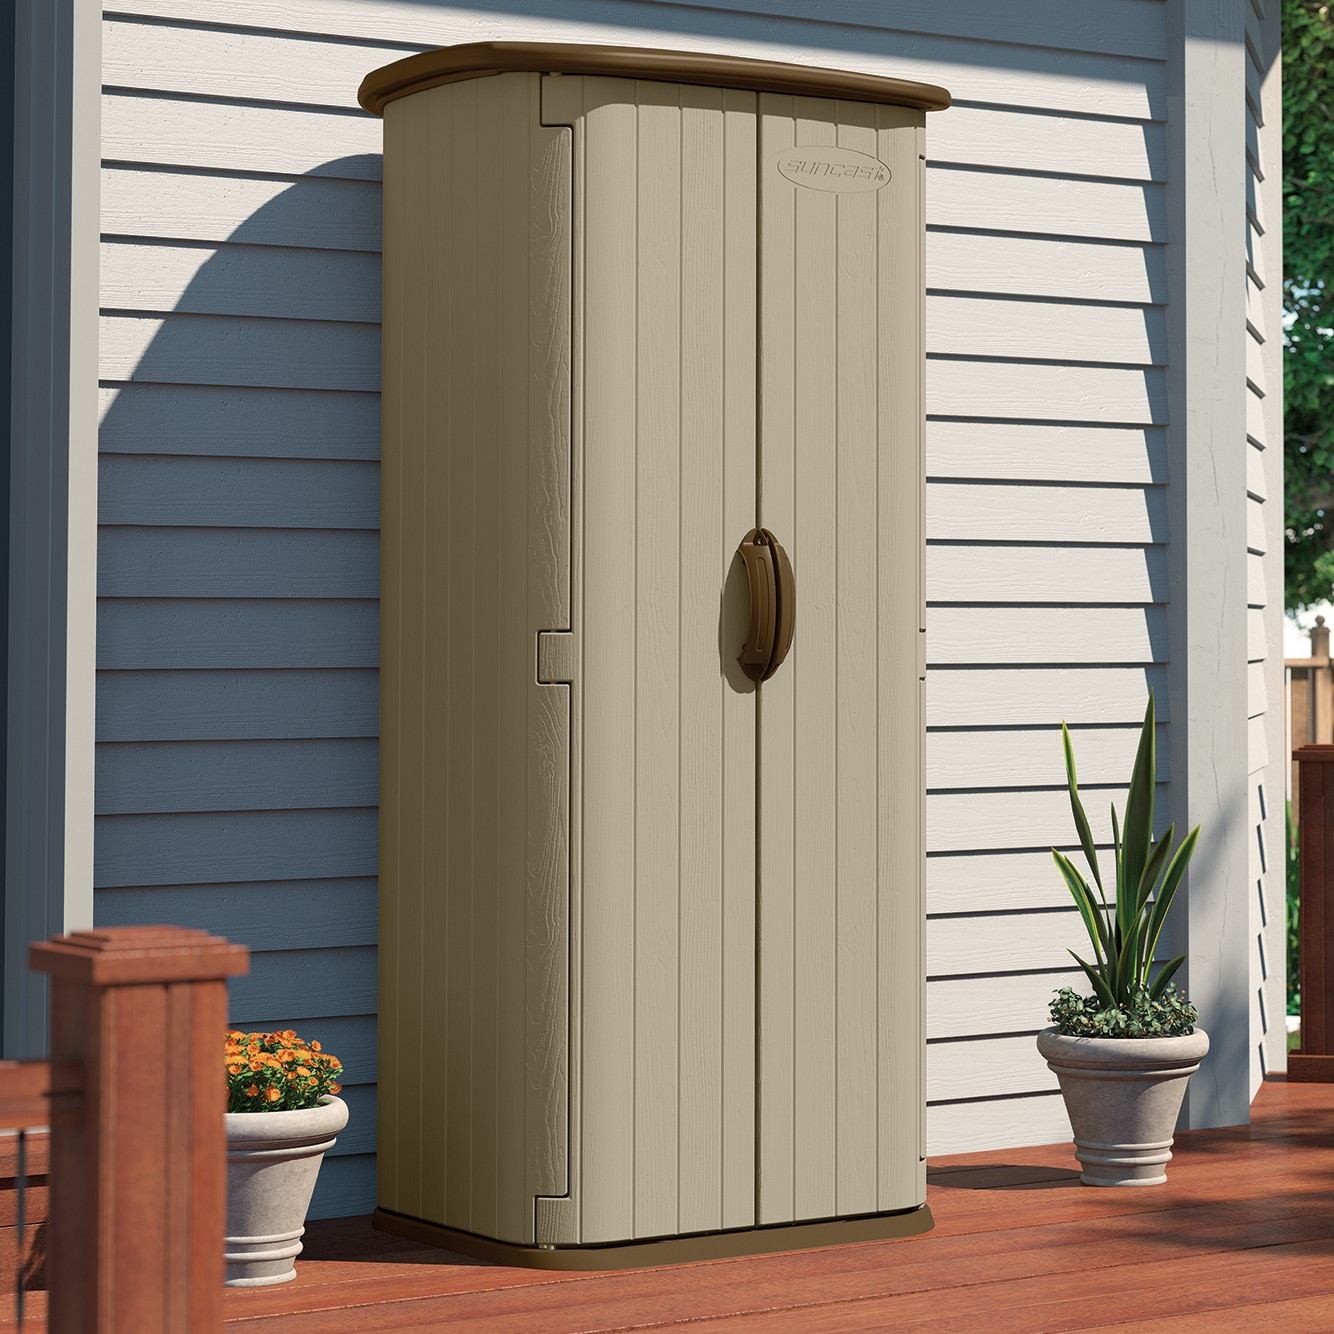 durable double wall resin outdoor garden tool storage shed - made in VKTHLMH